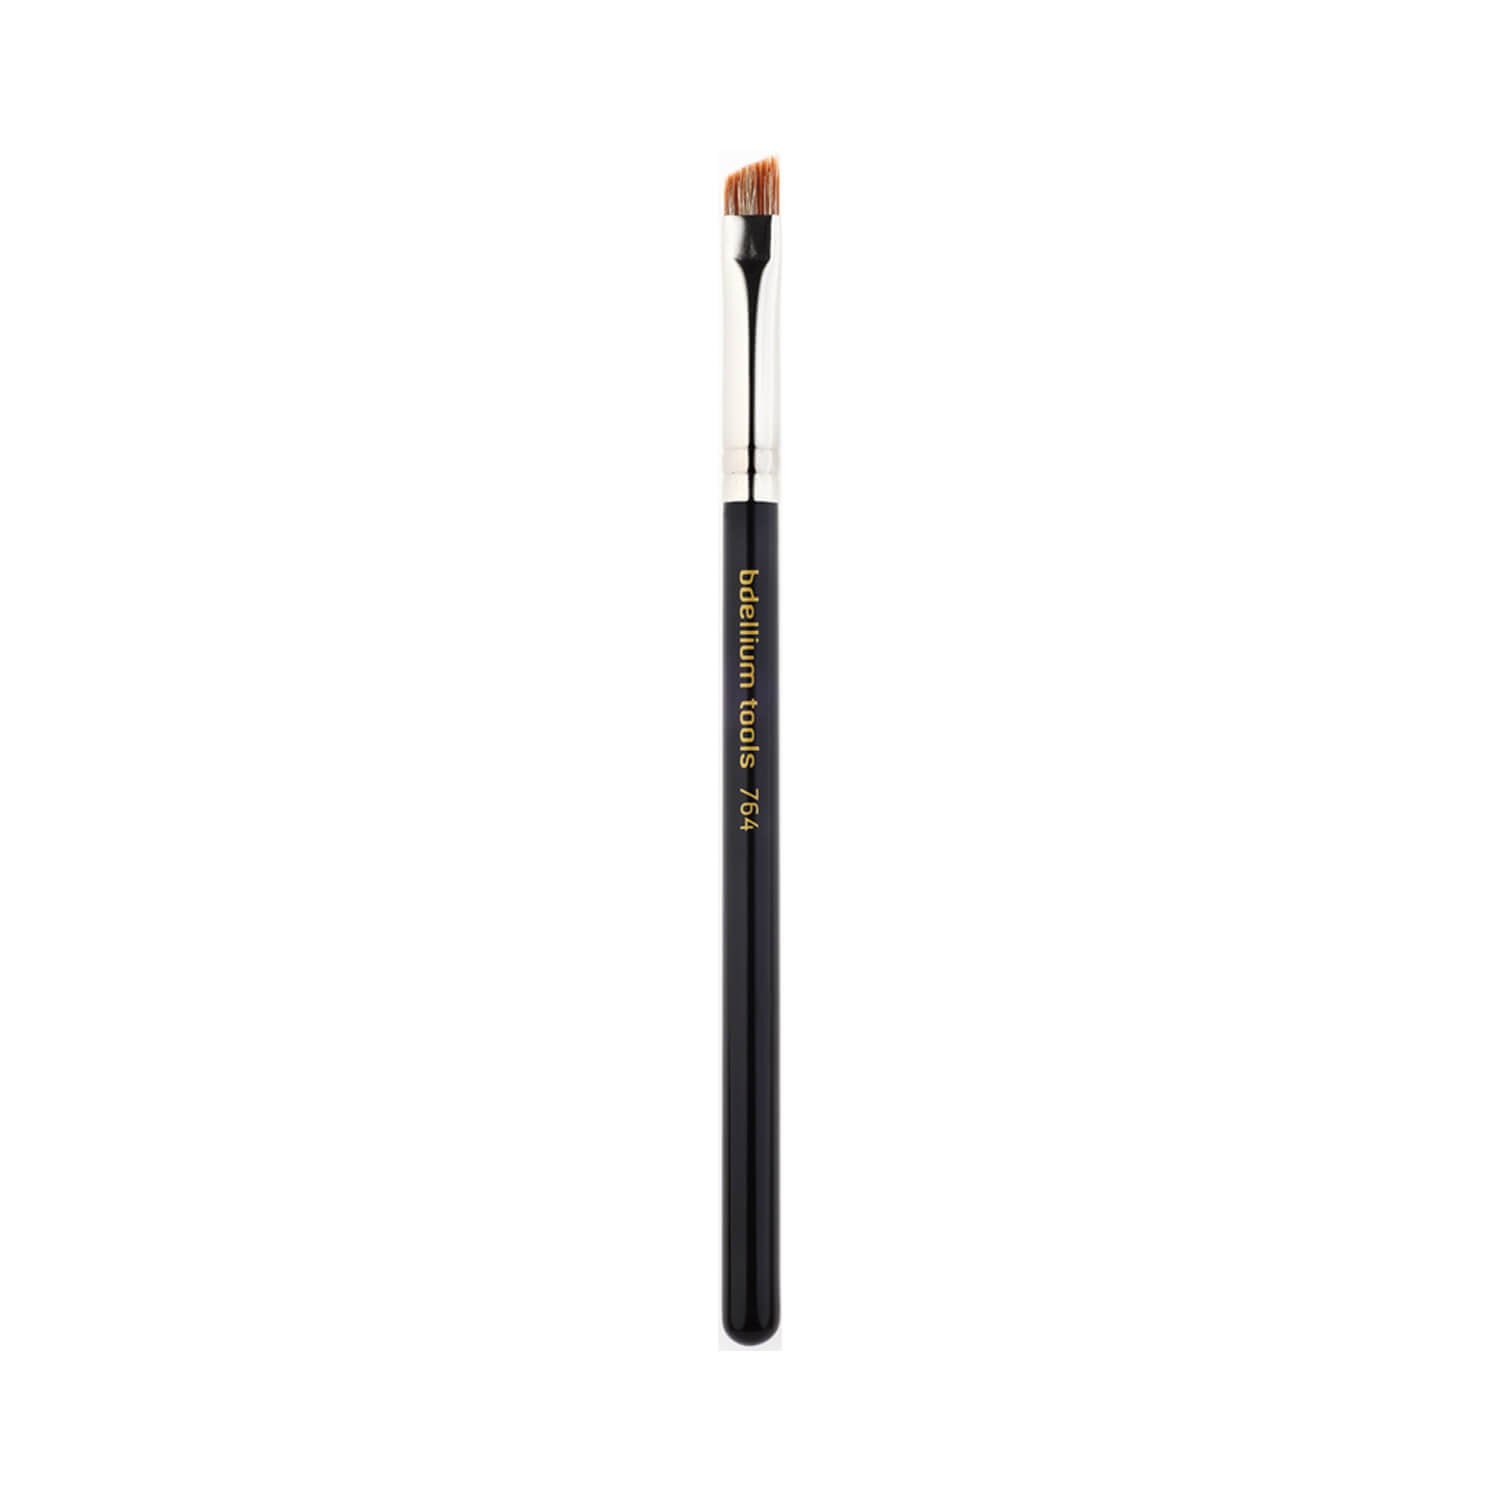 BDellium Tools Maestro Line 764 Bold Angled Brow Brush Black